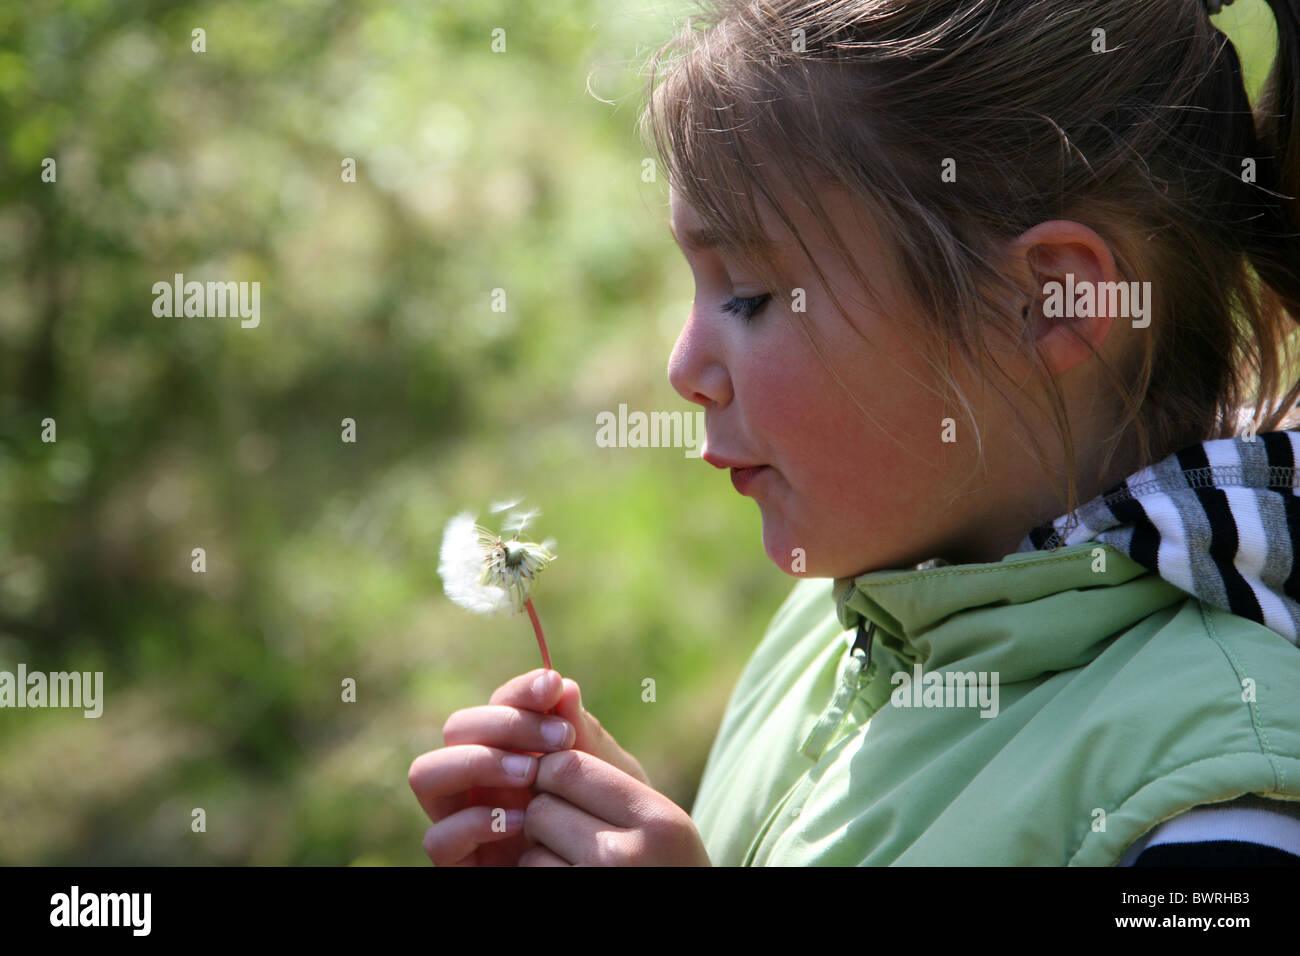 Young girl blowing seed plumes of dandelion, Haamstede, Zealand, Netherlands - Stock Image